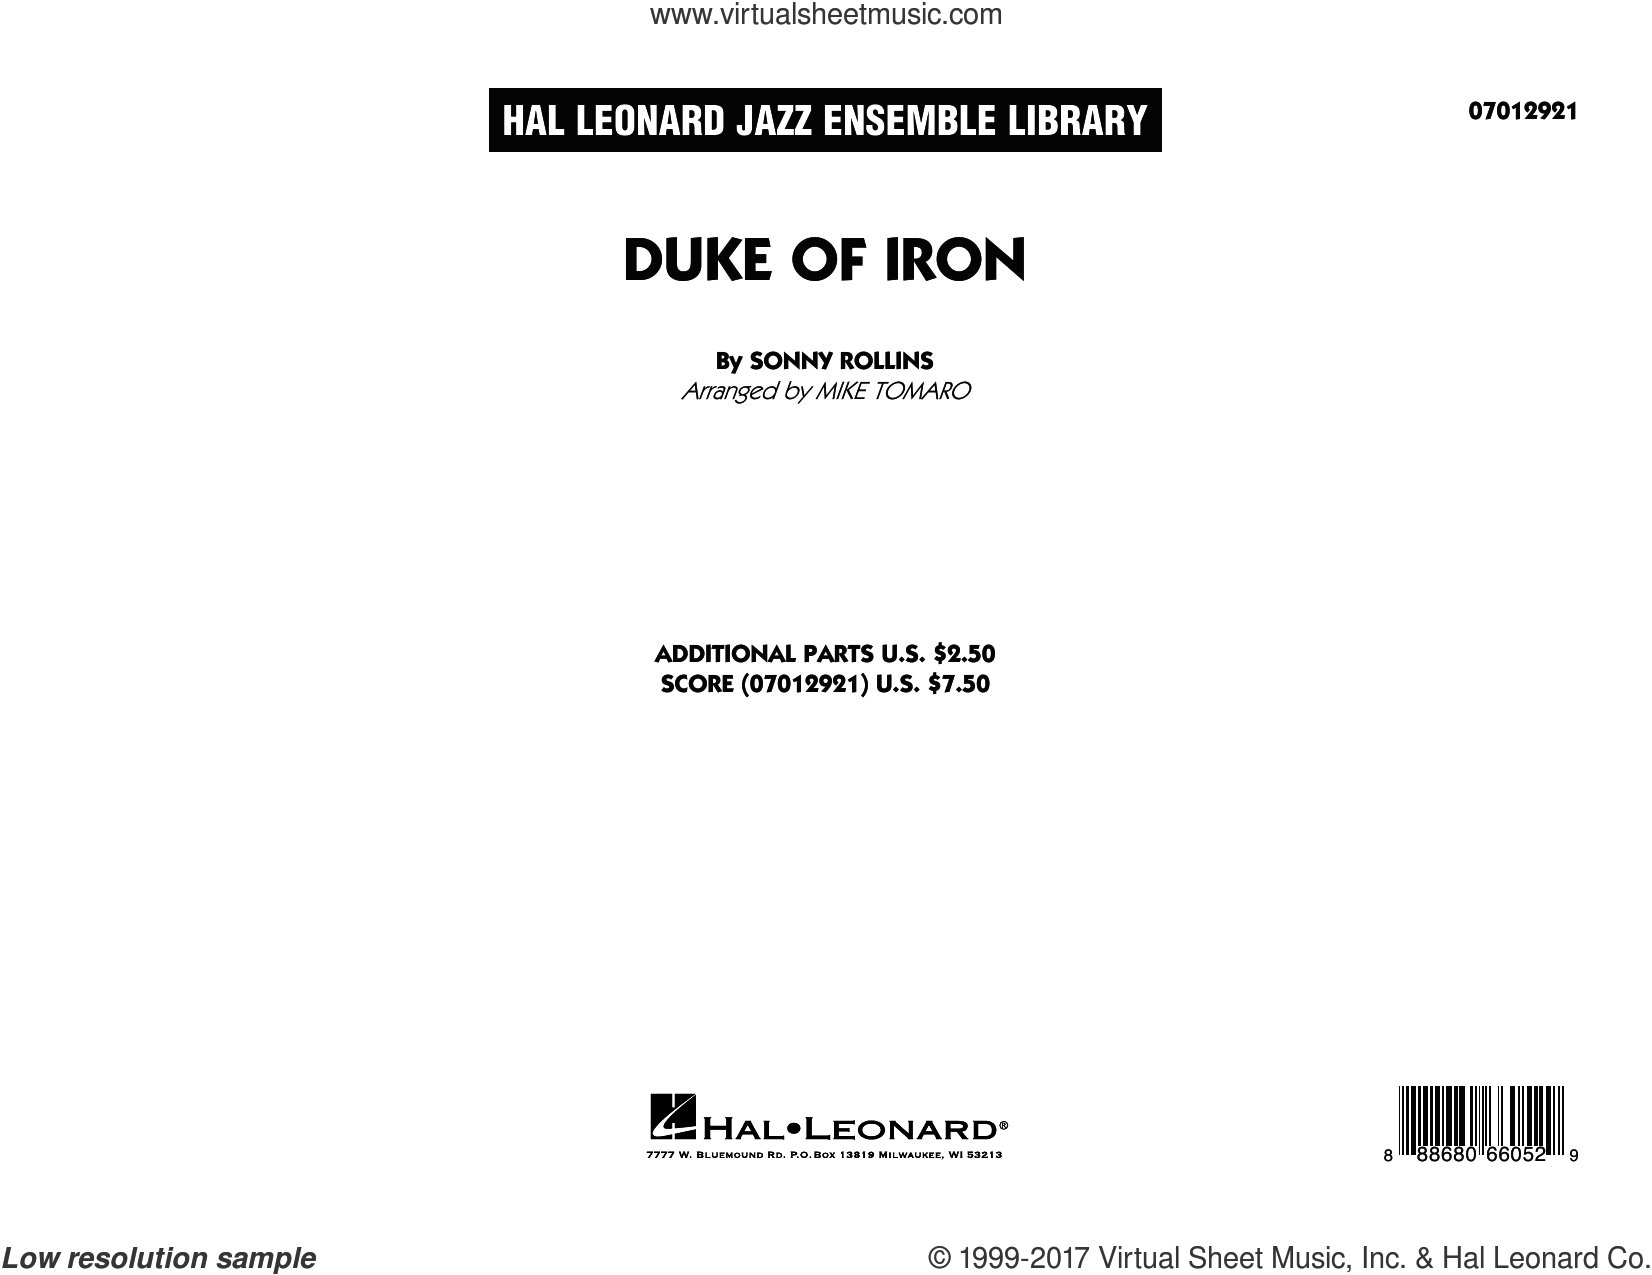 Rollins - Duke Of Iron sheet music (complete collection) for jazz band